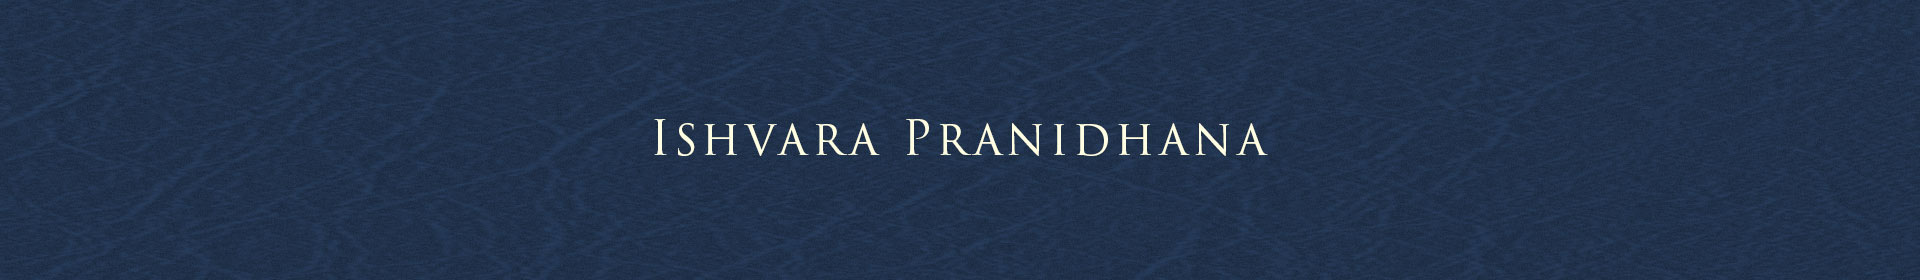 Ishvara Pranidhana: The Power of Surrender